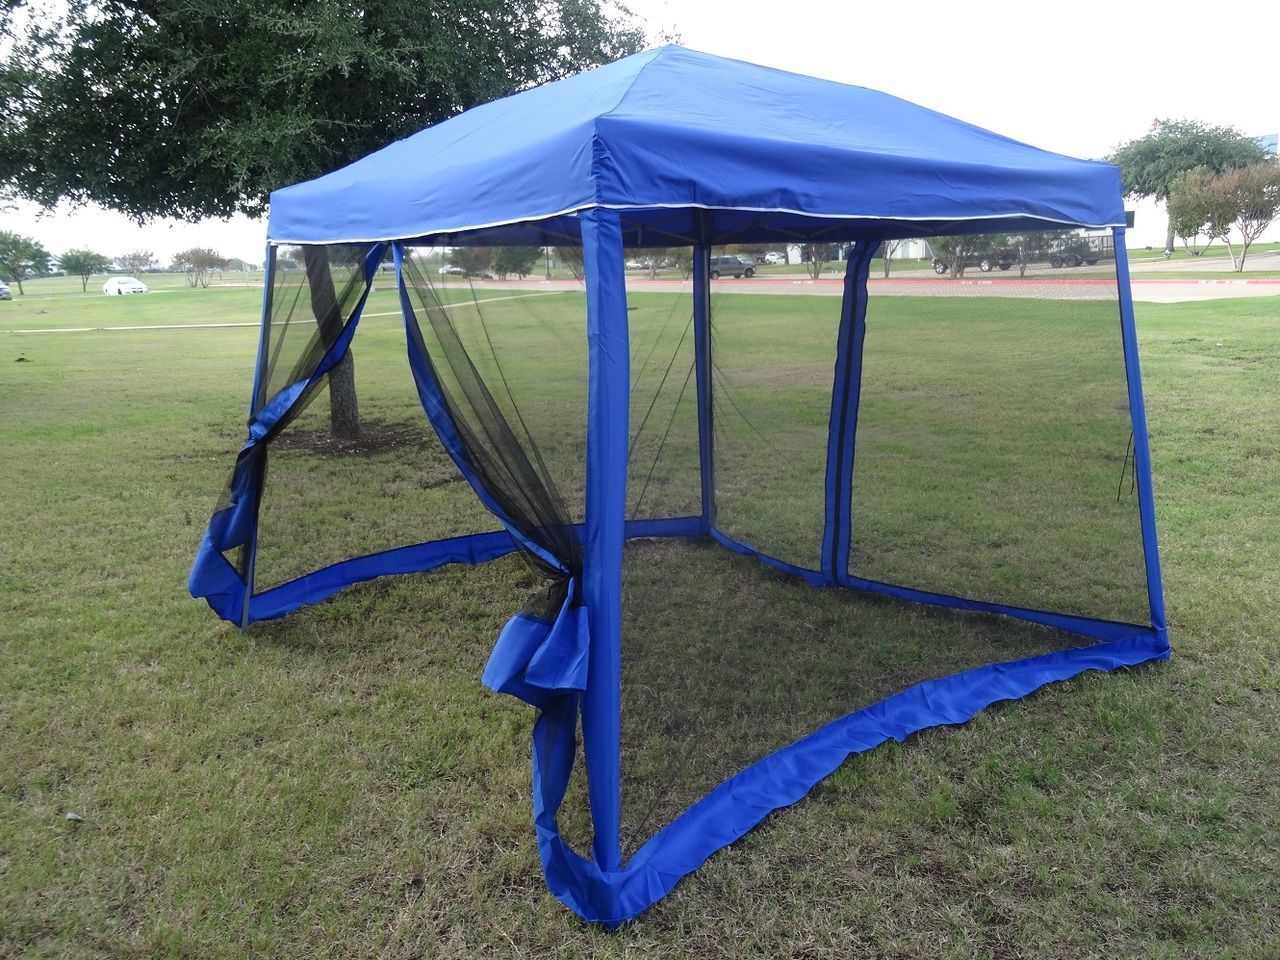 Deltacanopy 8 X8 10 X10 Blue Slant Leg Pop Up Tent With Mosquito Net 89 99 Http Deltacanopy Com 8x8 10x10 Blue Slant Leg Pop Pop Up Tent Gazebo Tent